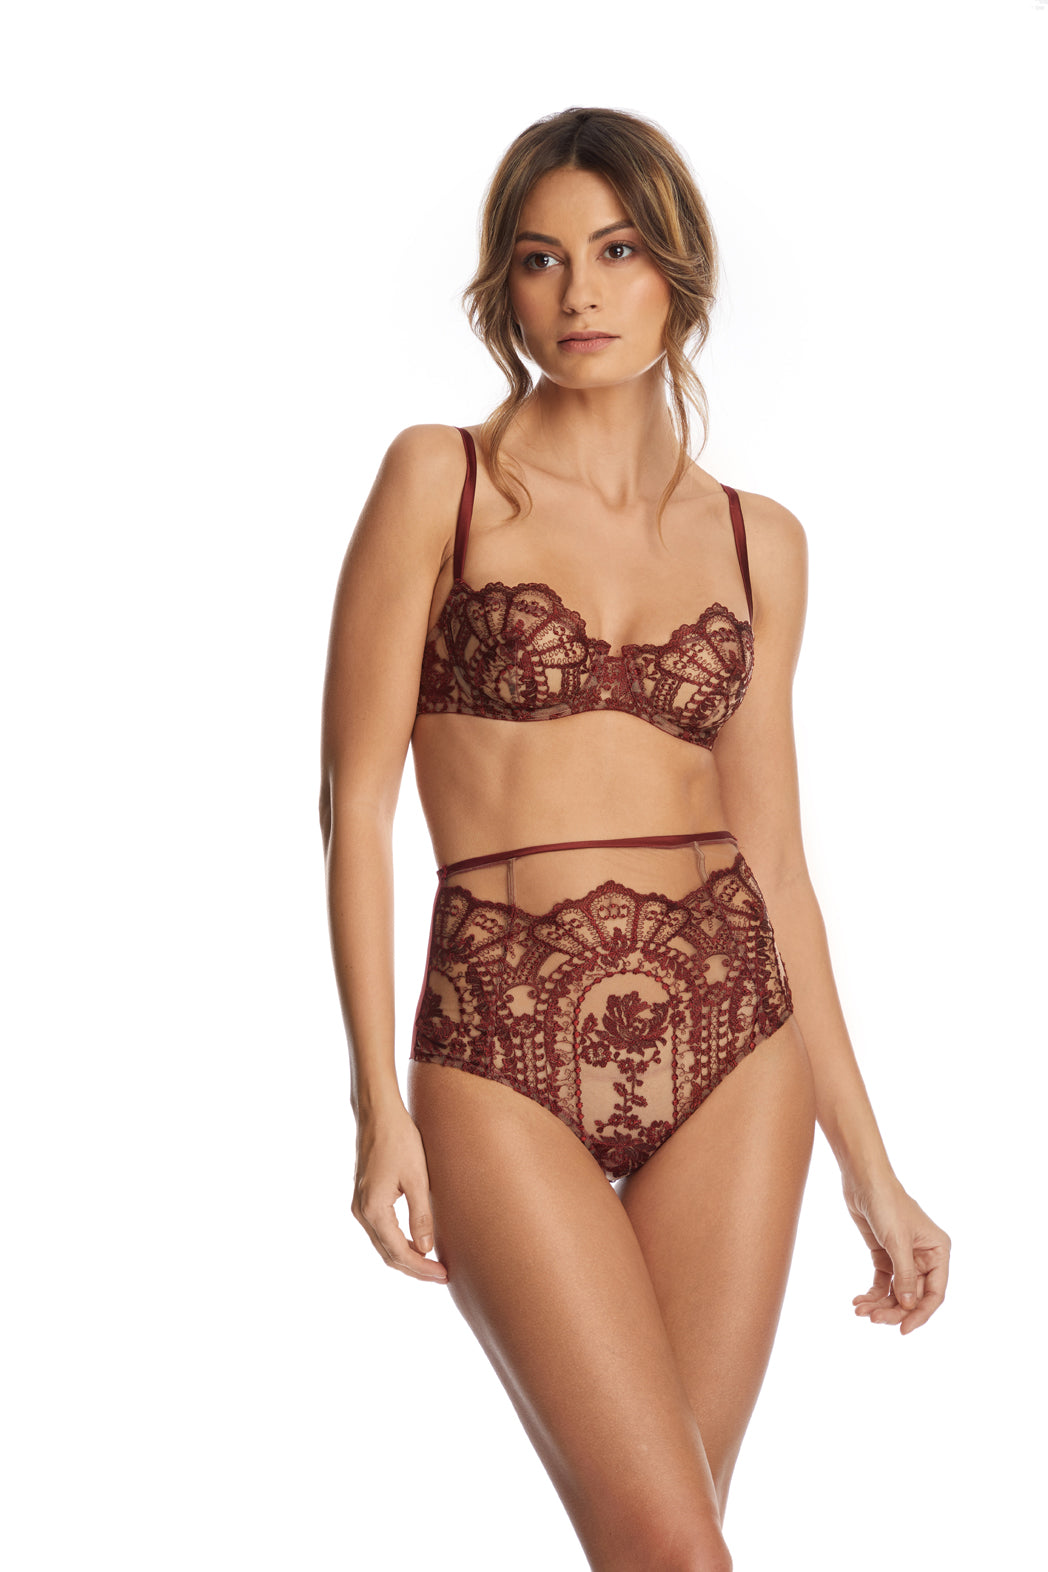 Desert Rose Balconette Bra in Dark Copper - I.D. Sarrieri